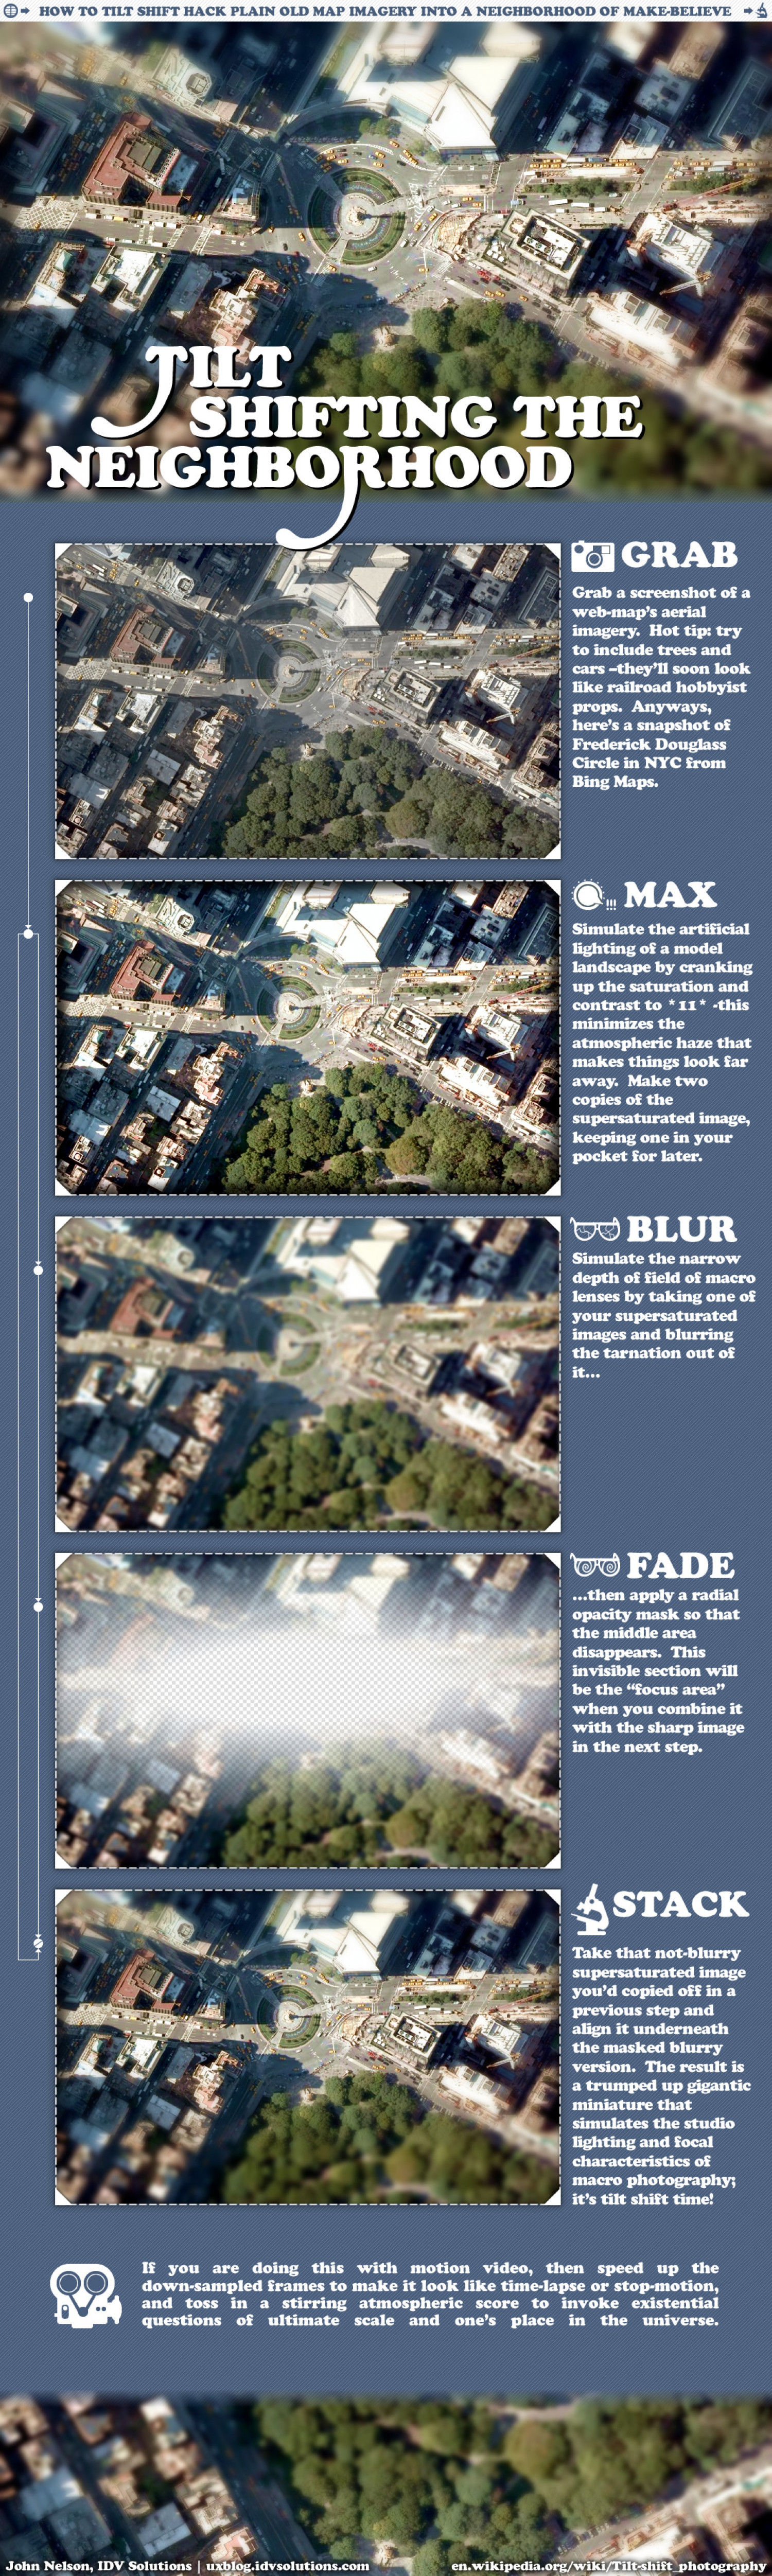 Tilt Shifting the Neighborhood Infographic